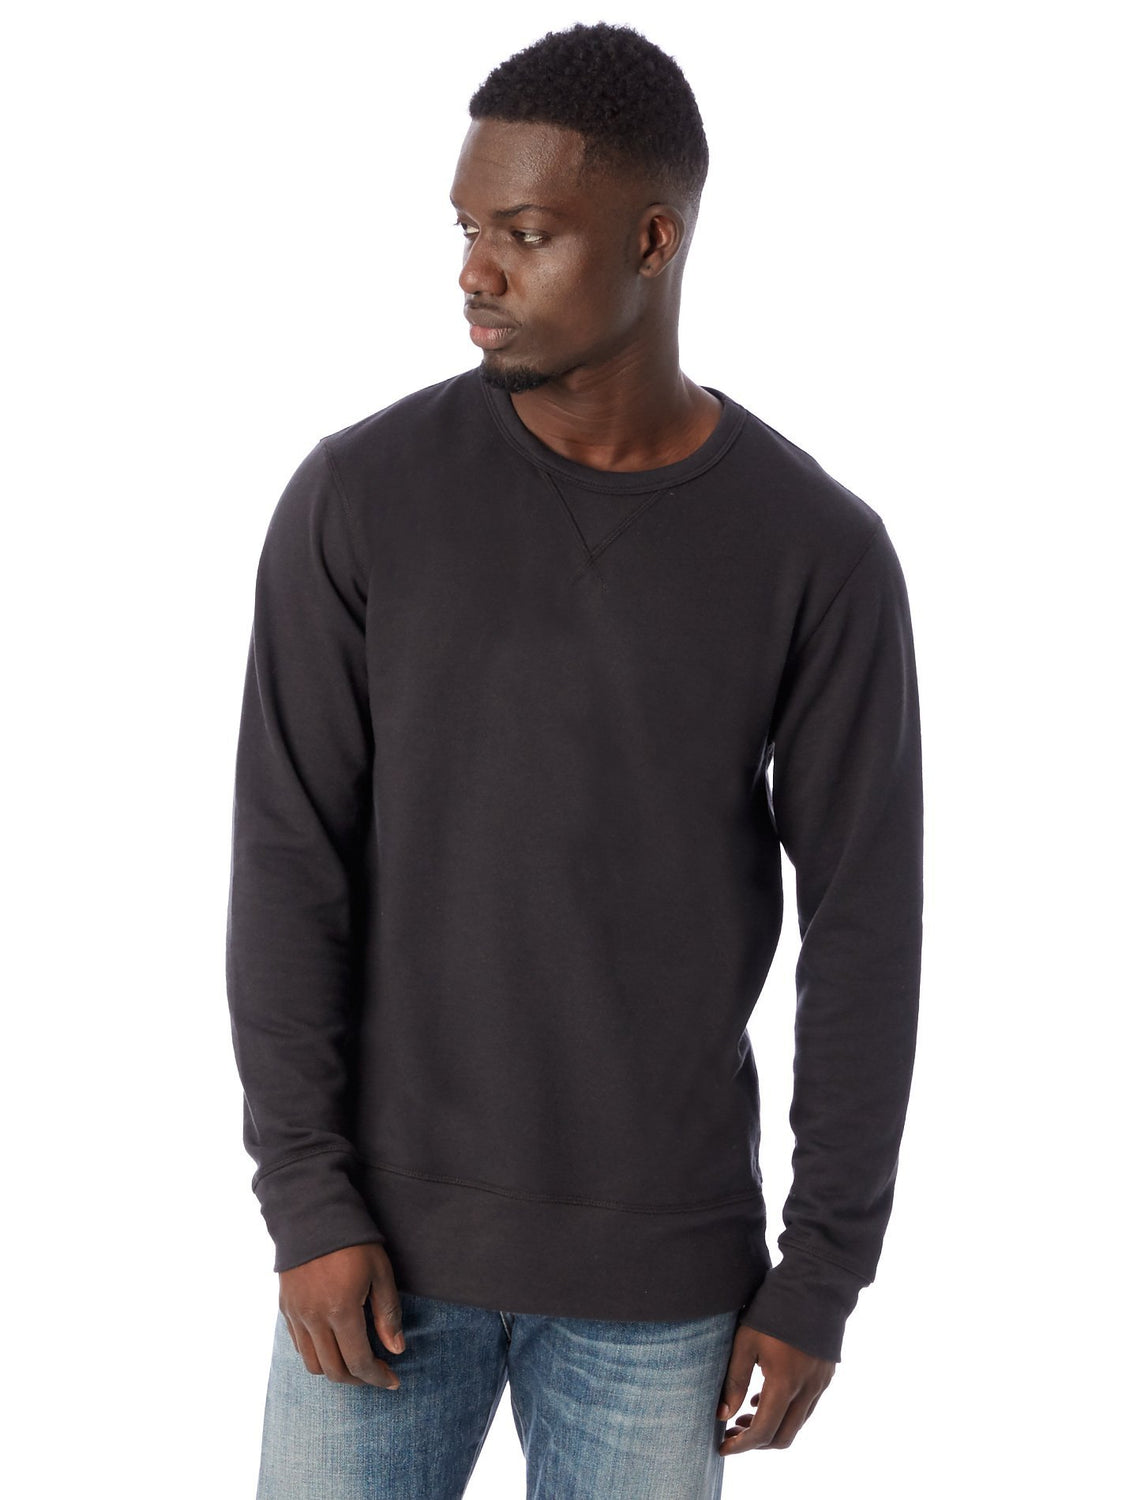 French B-Side Sweatshirt - Simple Stature